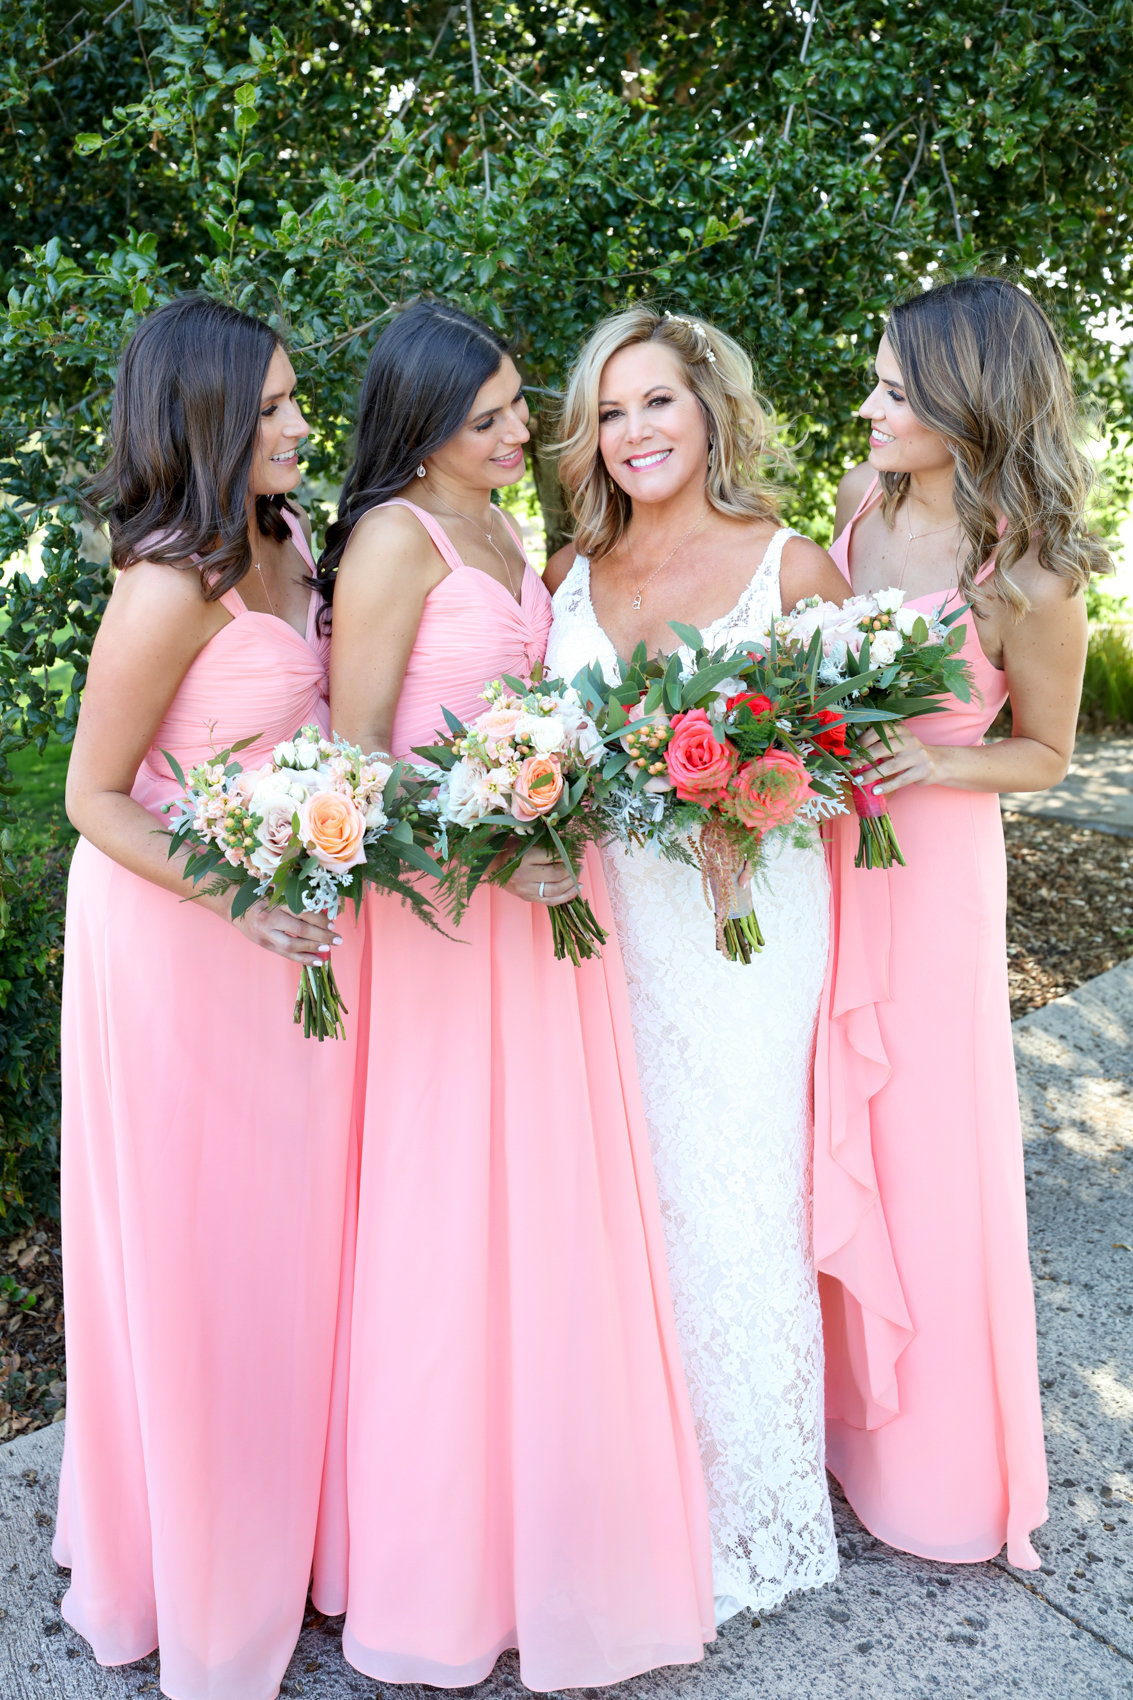 Portraits of bride with bridesmaids holding bouquets, outdoor portraits before wedding